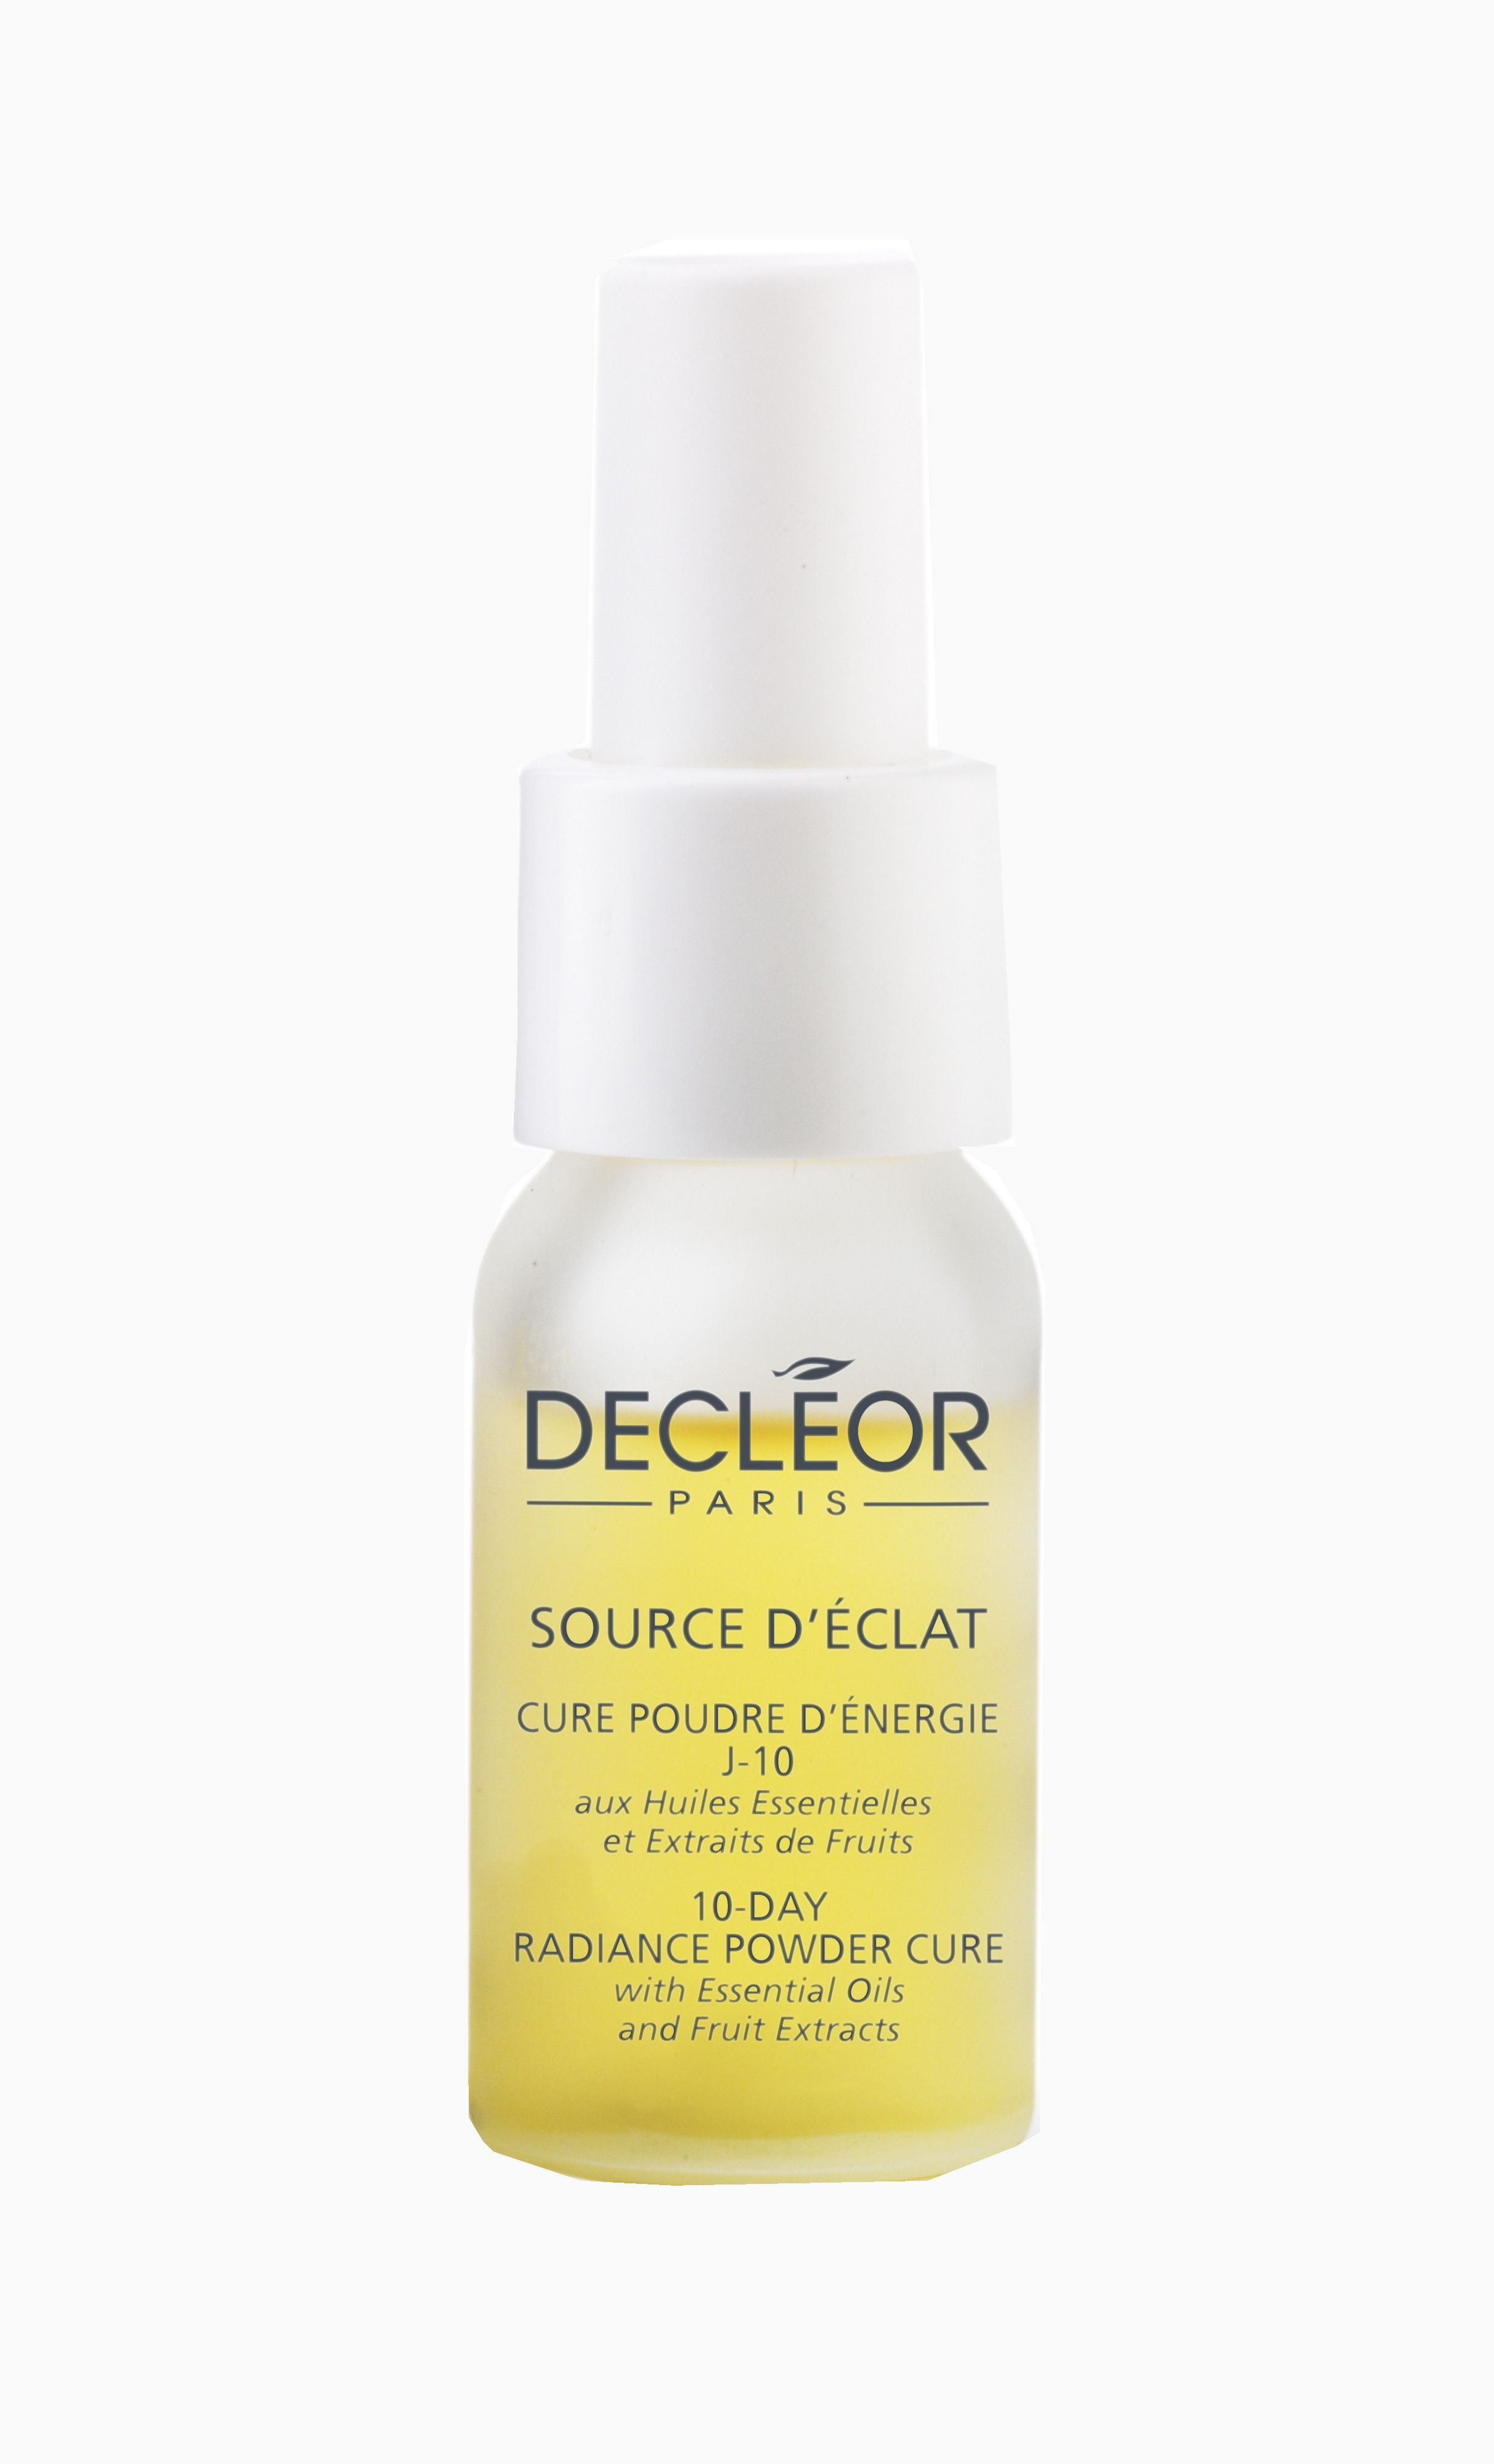 Decleor 10ml source declat 10 day power cure Decleor source declat 10 day power cure. This intensive facial treatment increases the radiance within your complexion in ten days. Reveals a smoother, more refined texture and increases skins vitalit http://www.comparestoreprices.co.uk/health-and-beauty/decleor-10ml-source-declat-10-day-power-cure.asp